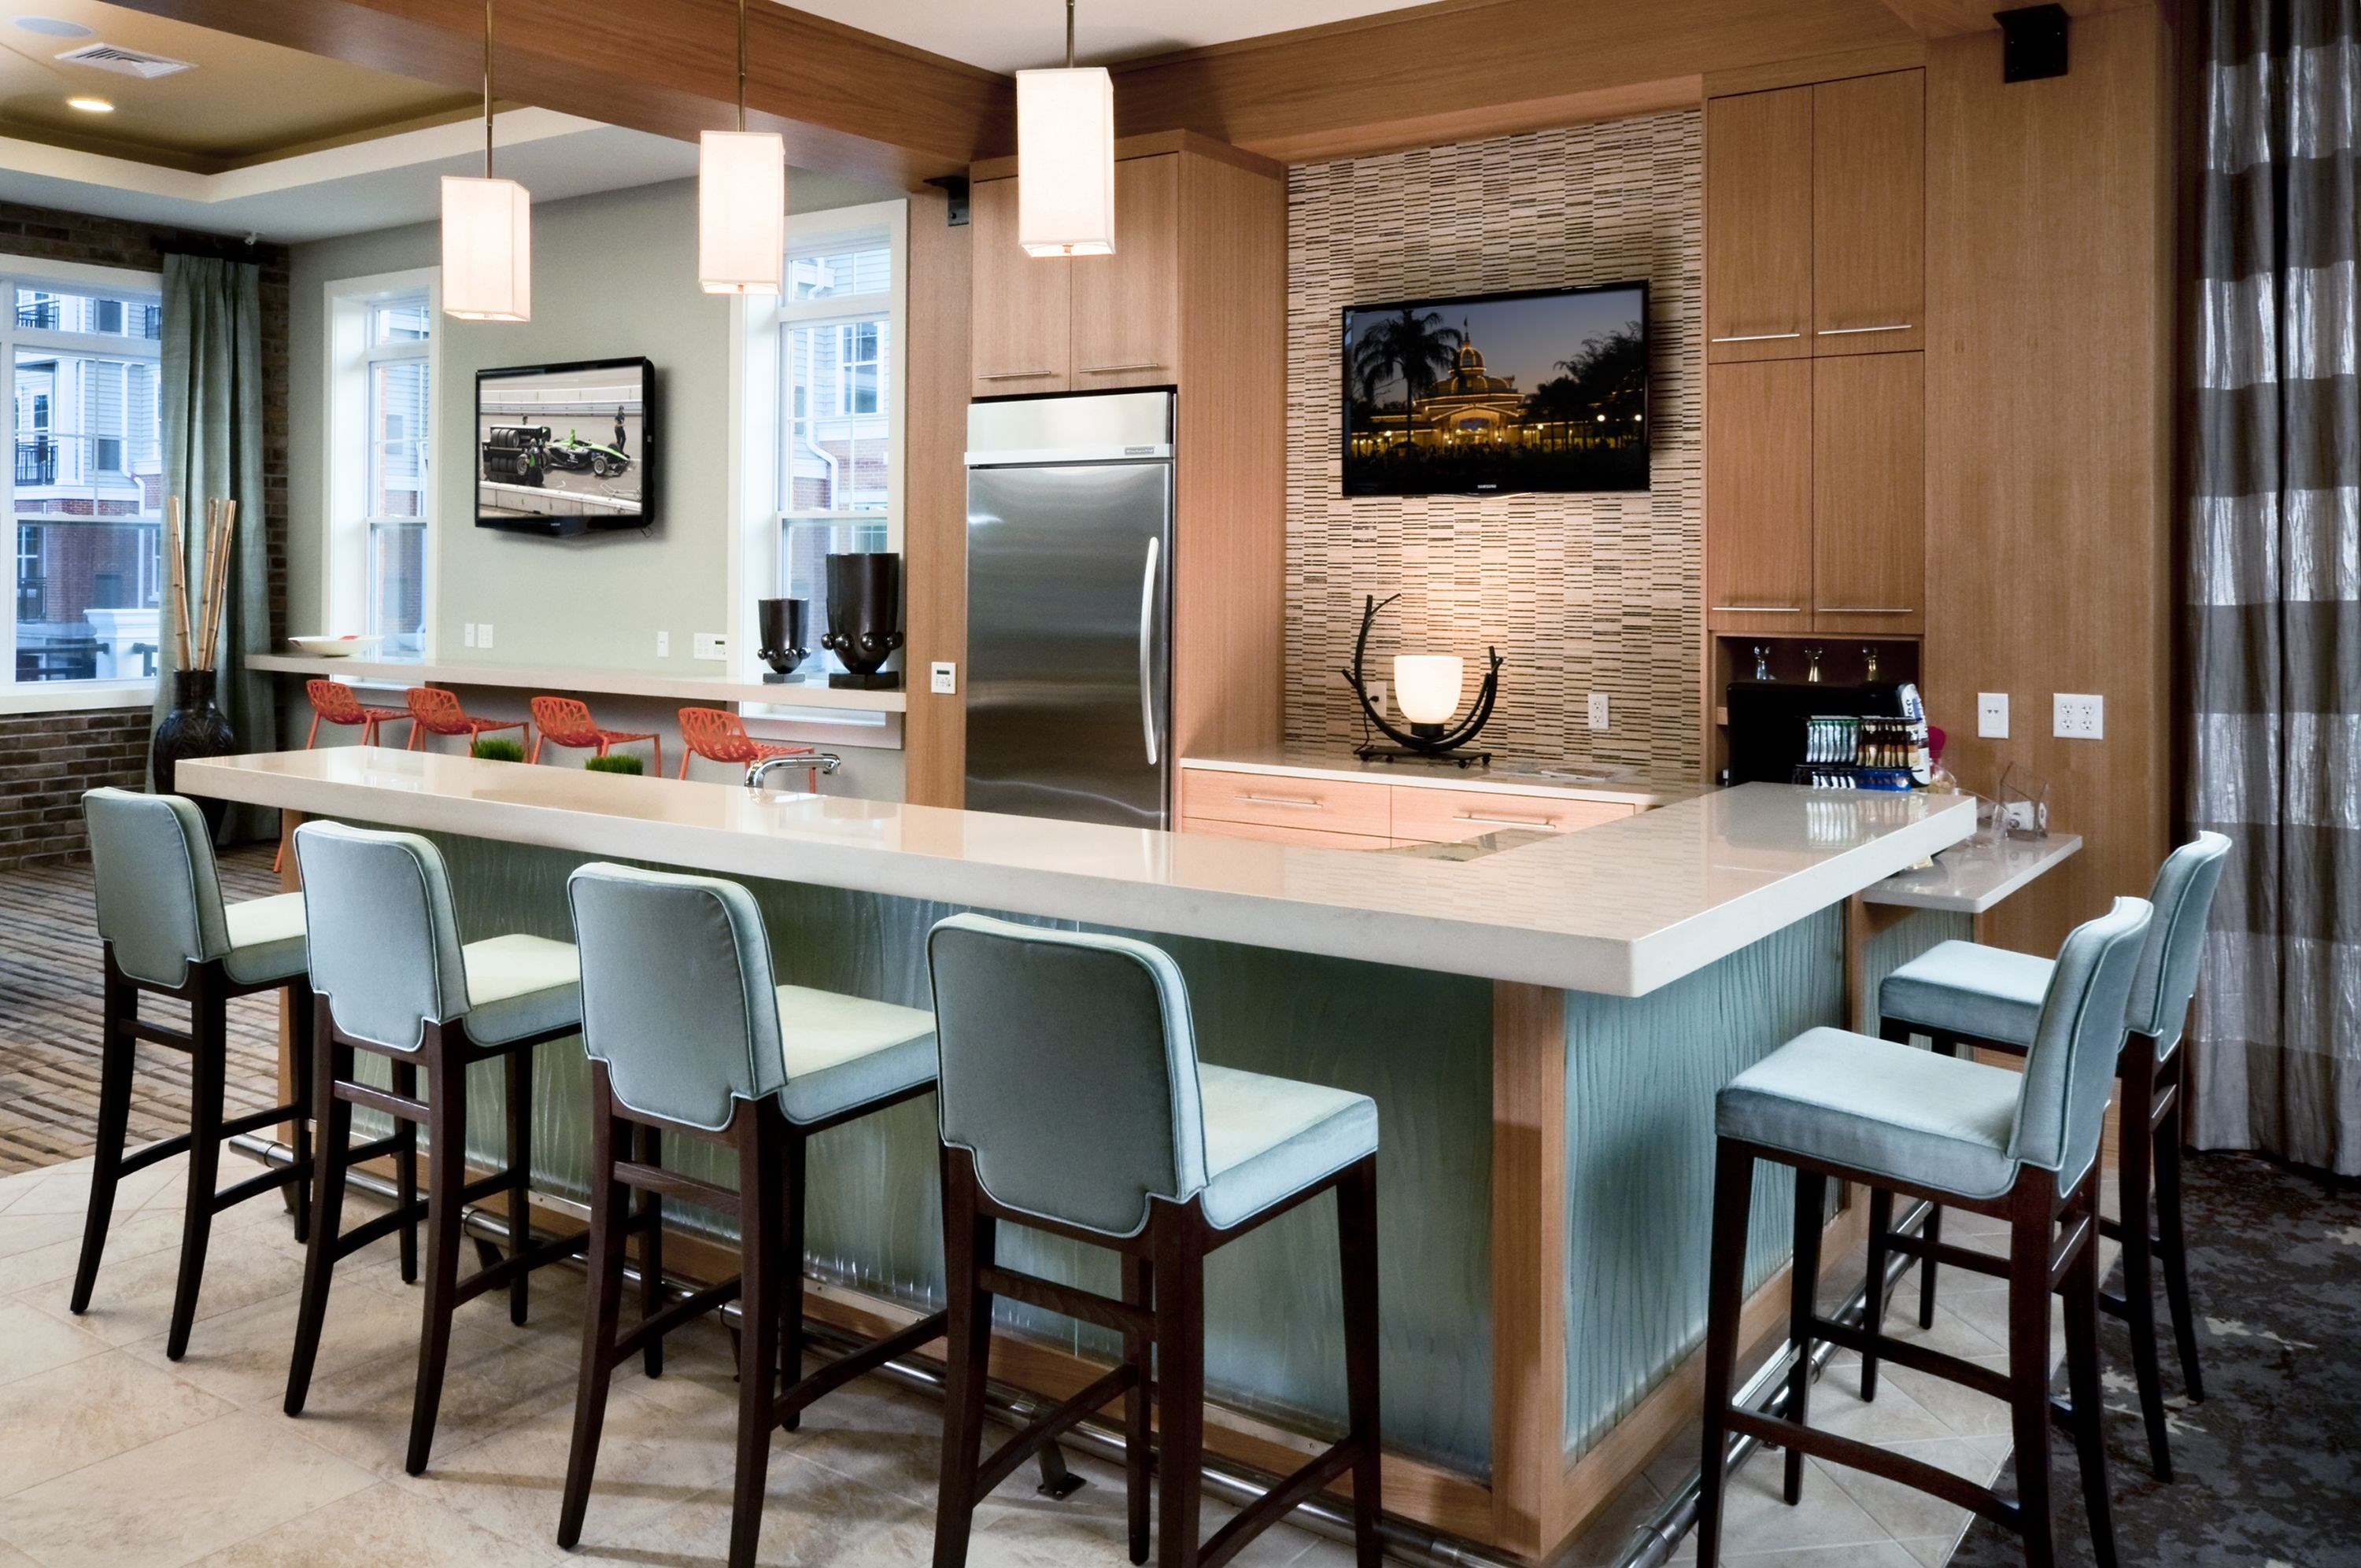 Clubhouse Kitchen at The Reserve at Riverdale Apartments in Riverdale, NJ